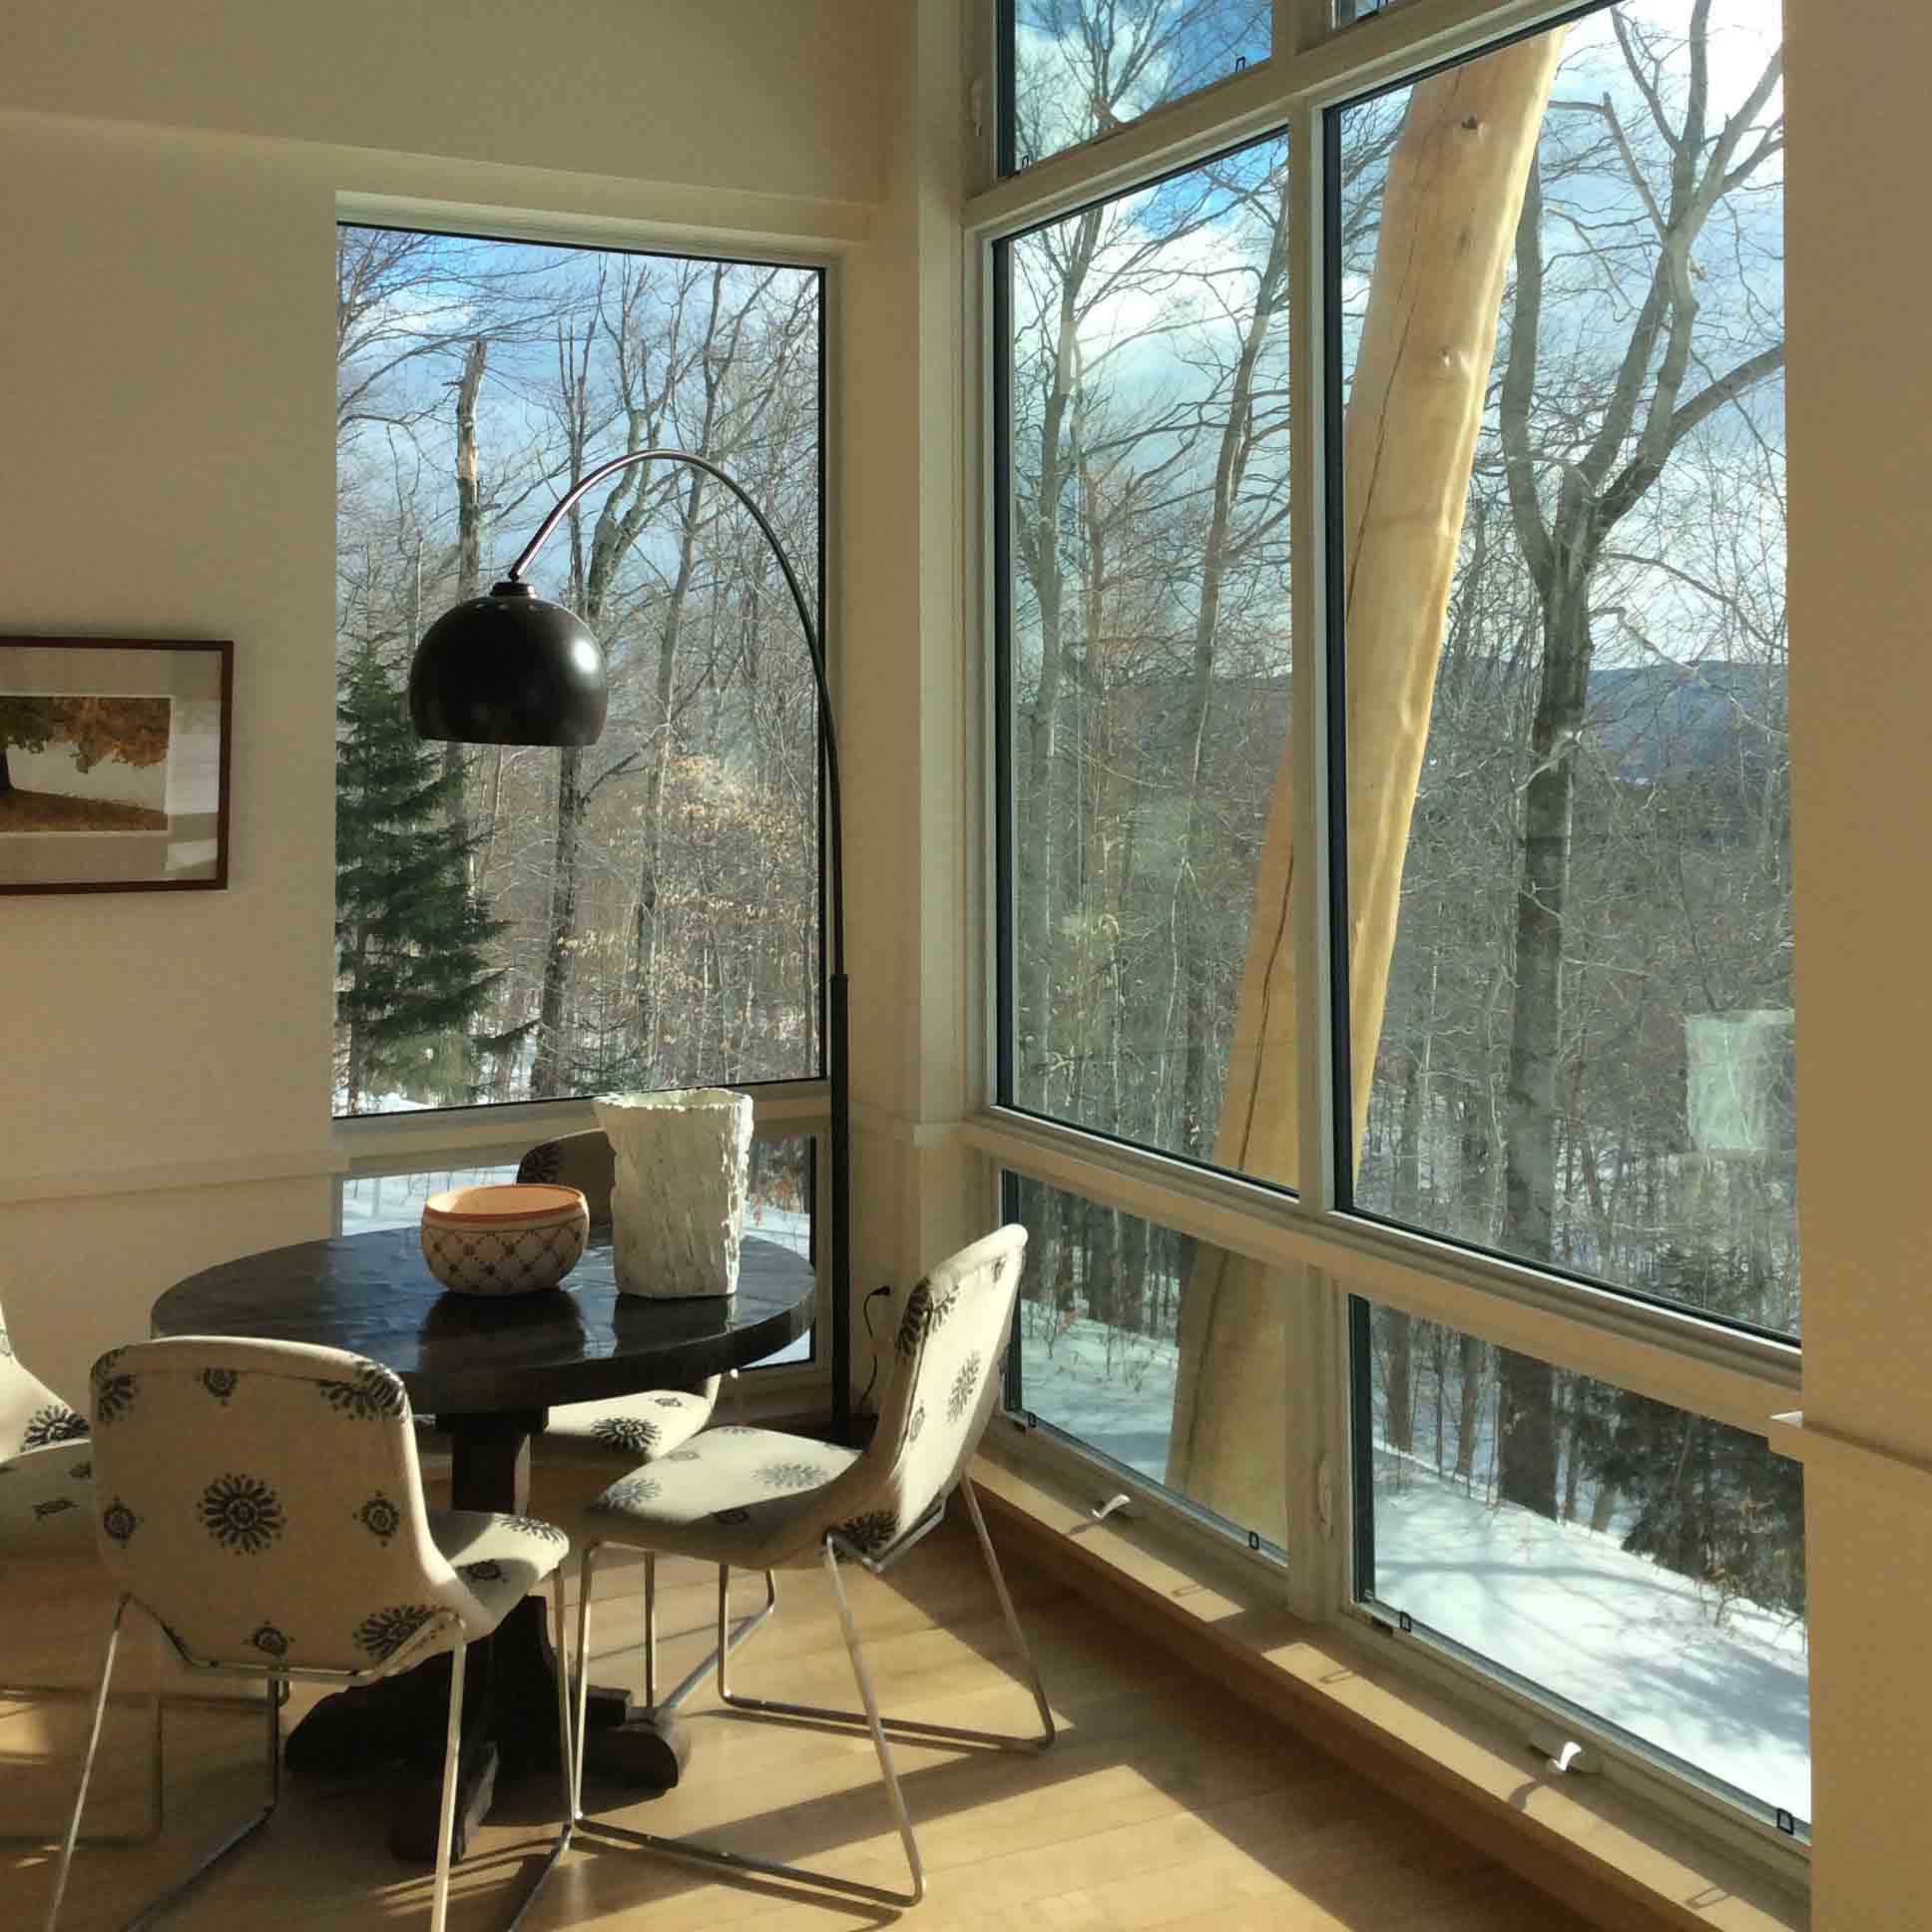 Vermont Architect Chris Cook favorite projects